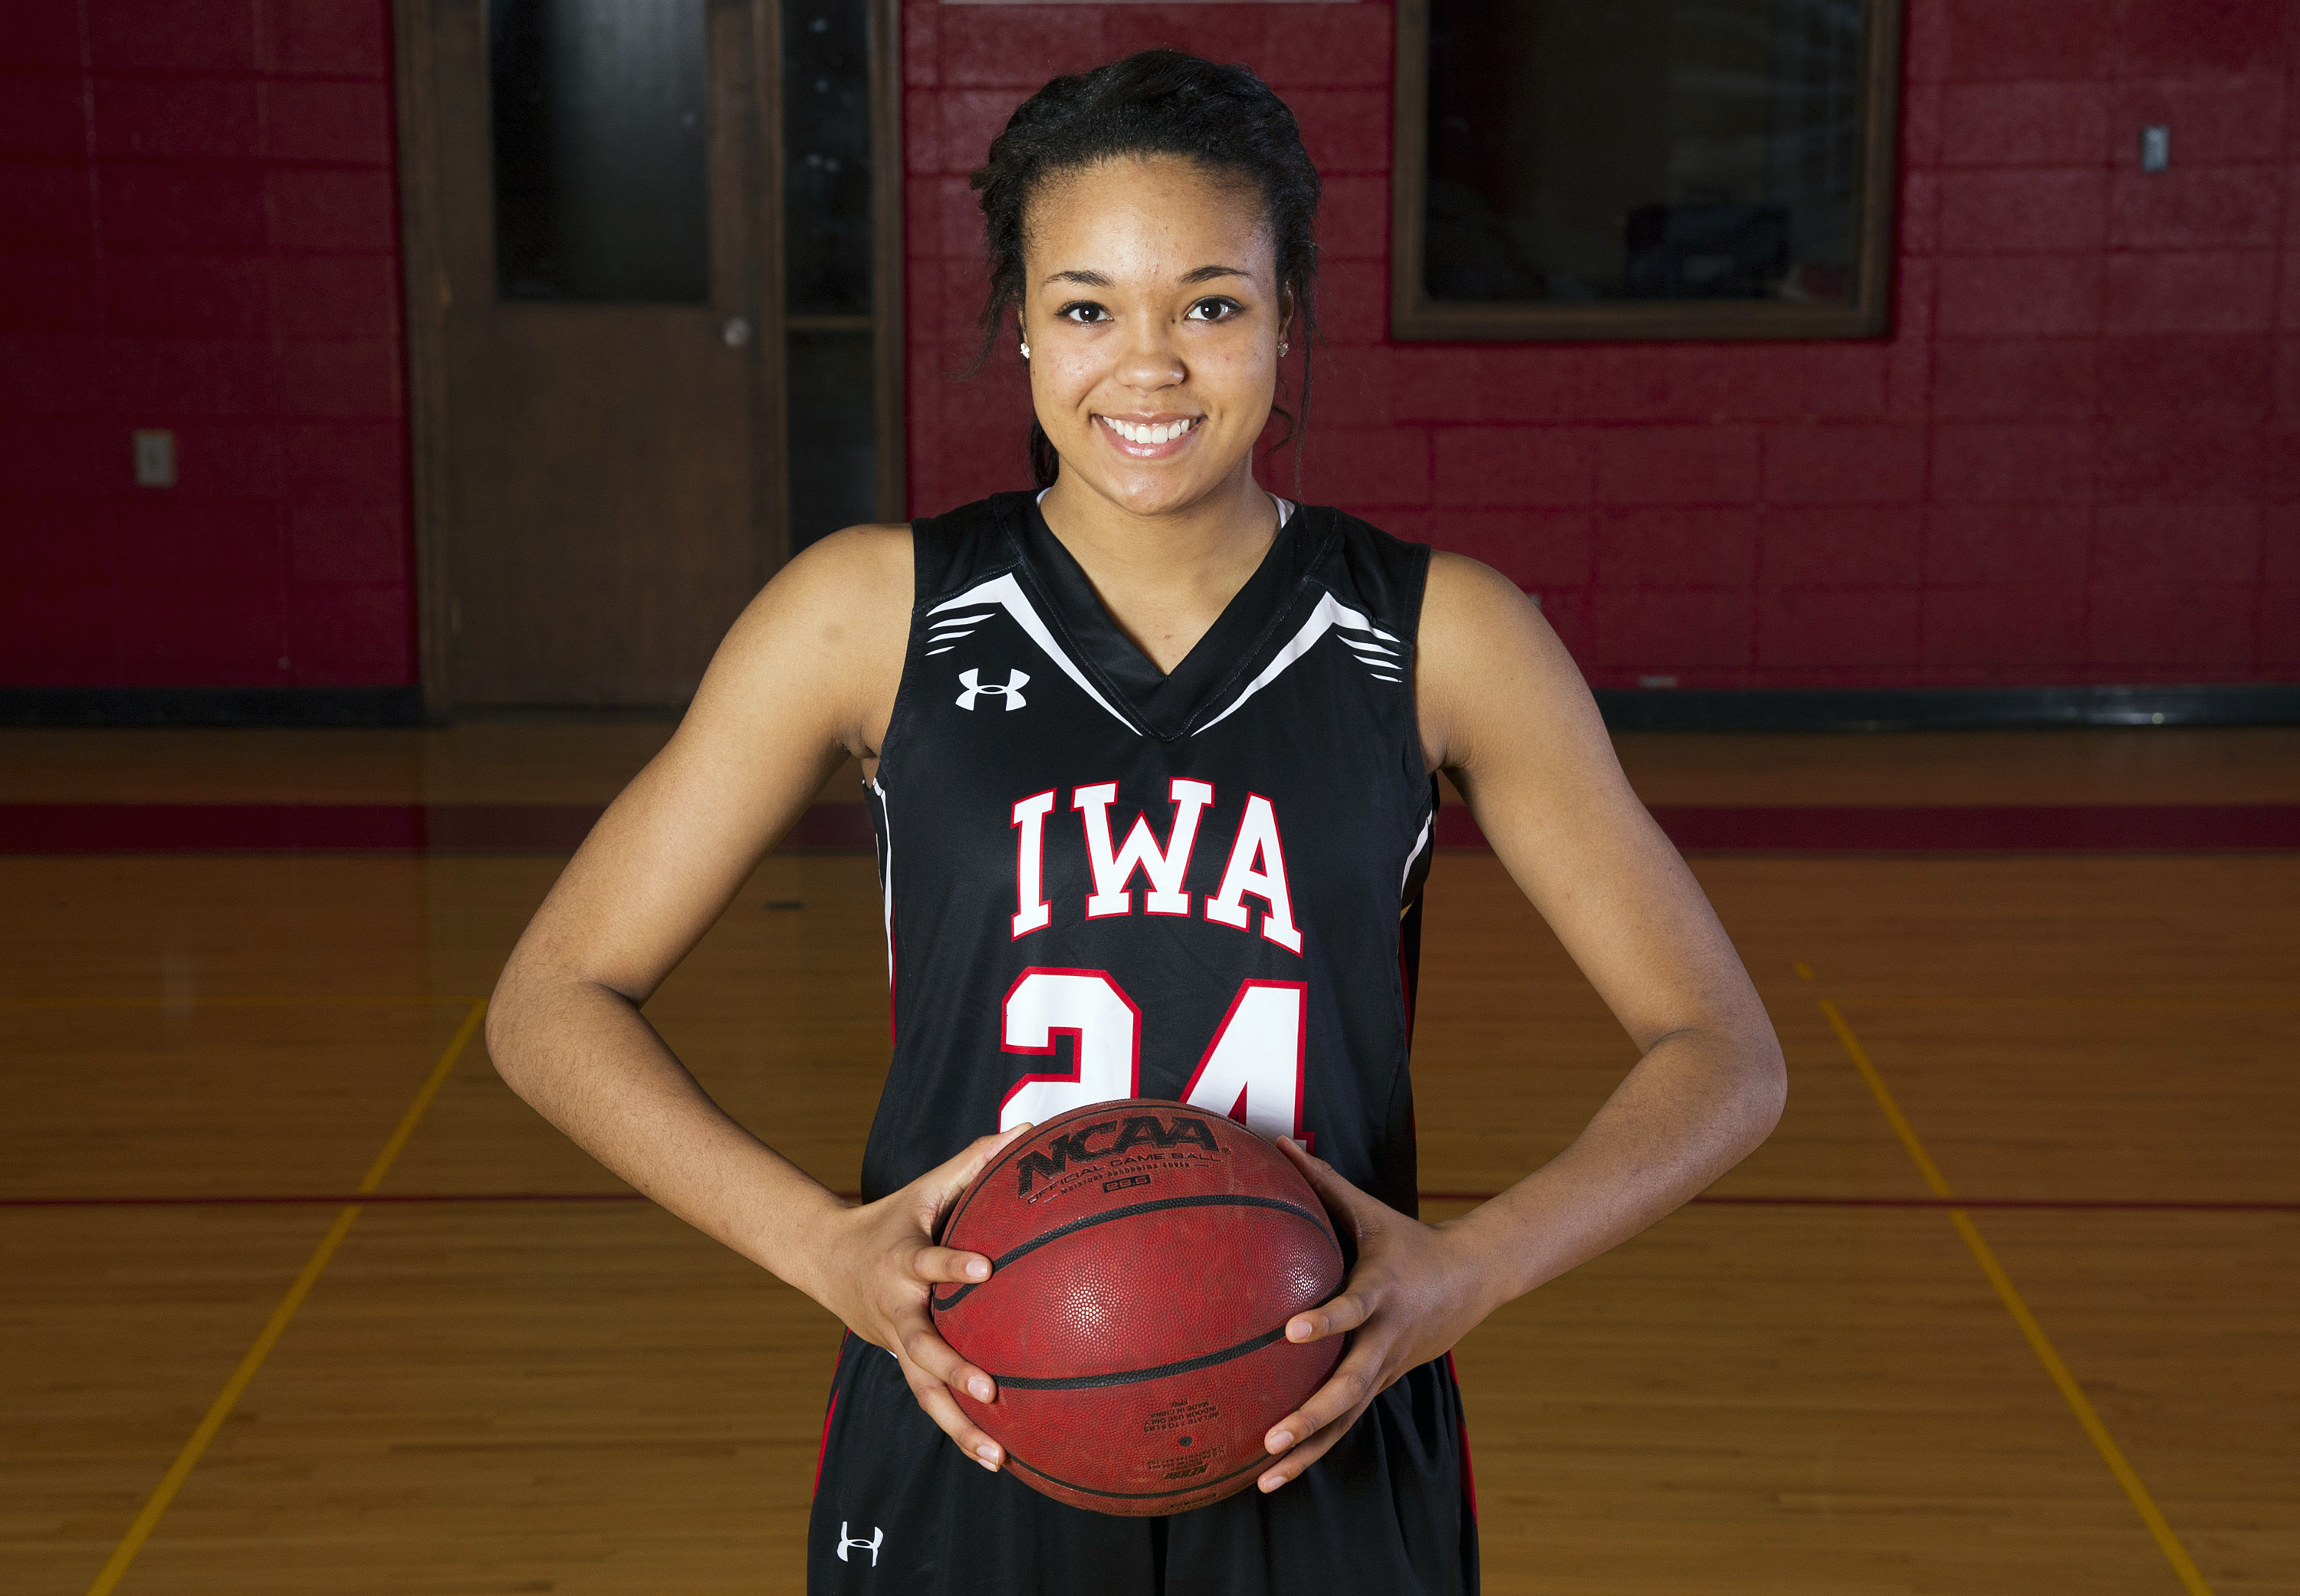 Napheesa Collier is an ALL-USA First Team selection (Photo: Jeff Curry, USA TODAY Sports)